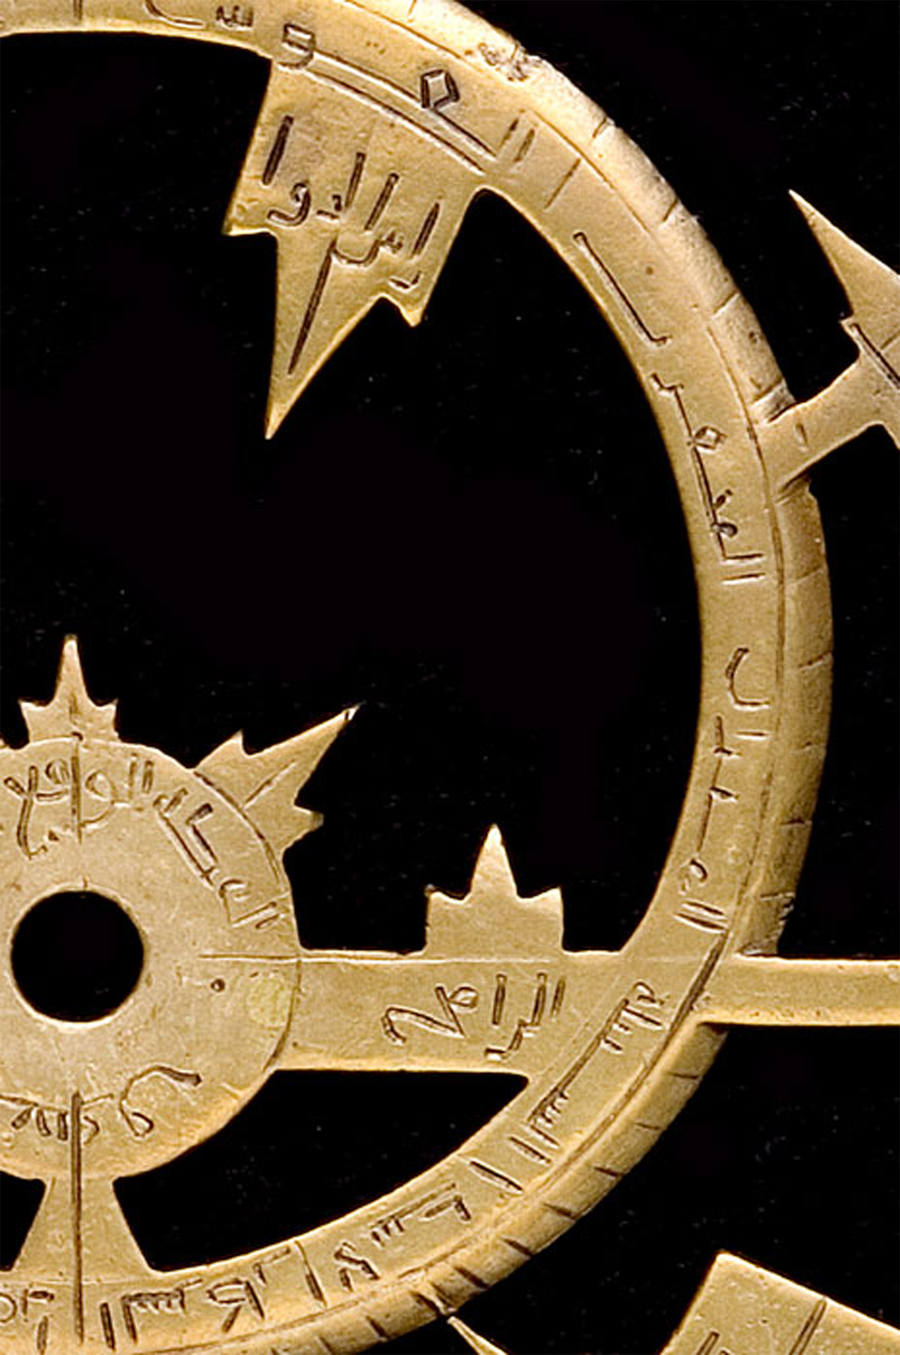 9th century syrian astrolabe